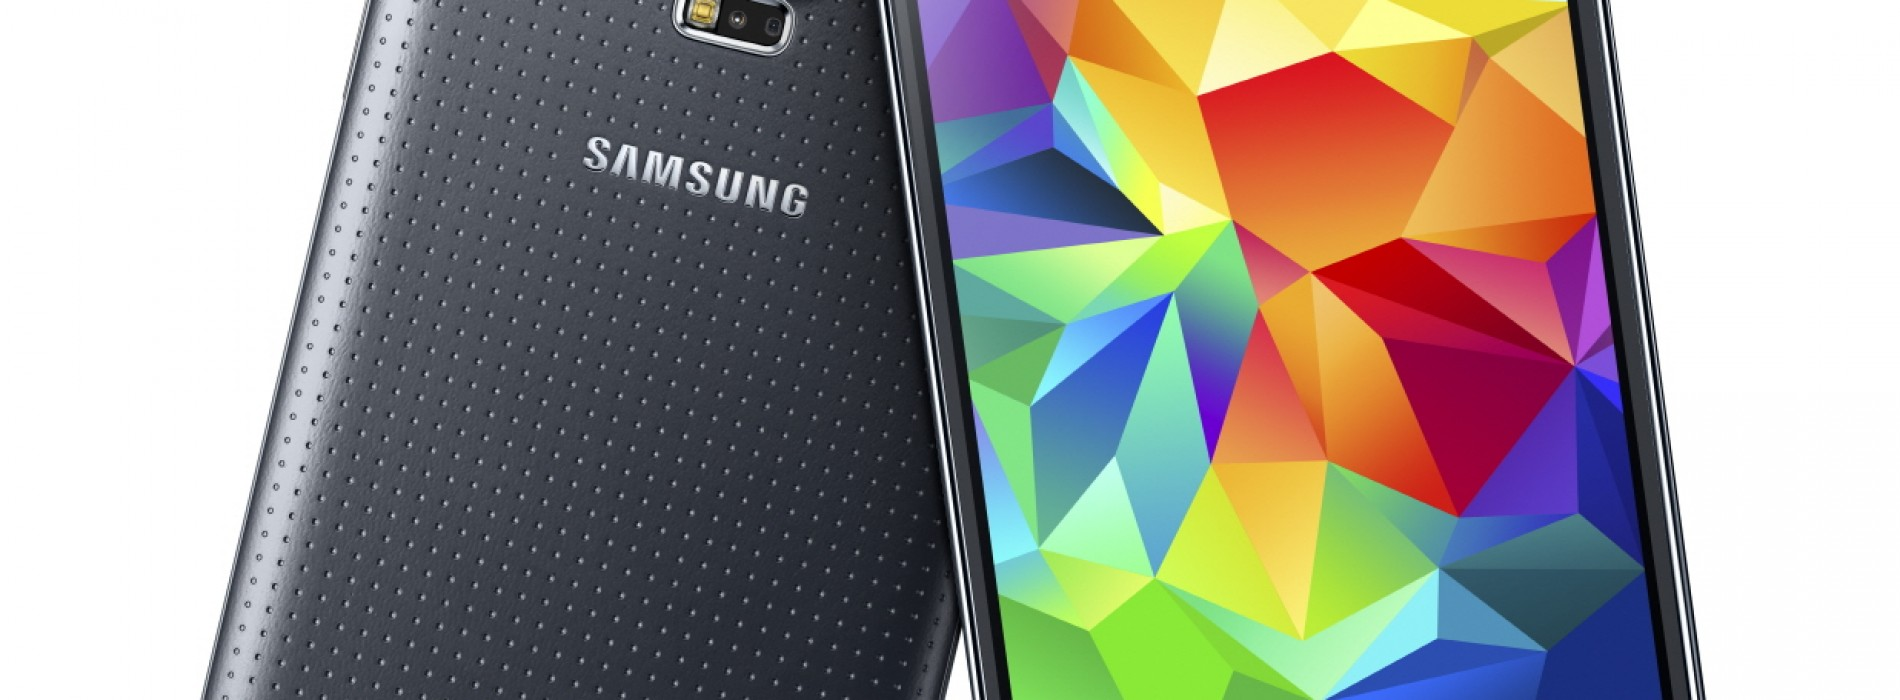 Get the Samsung Galaxy S5 look with these wallpapers